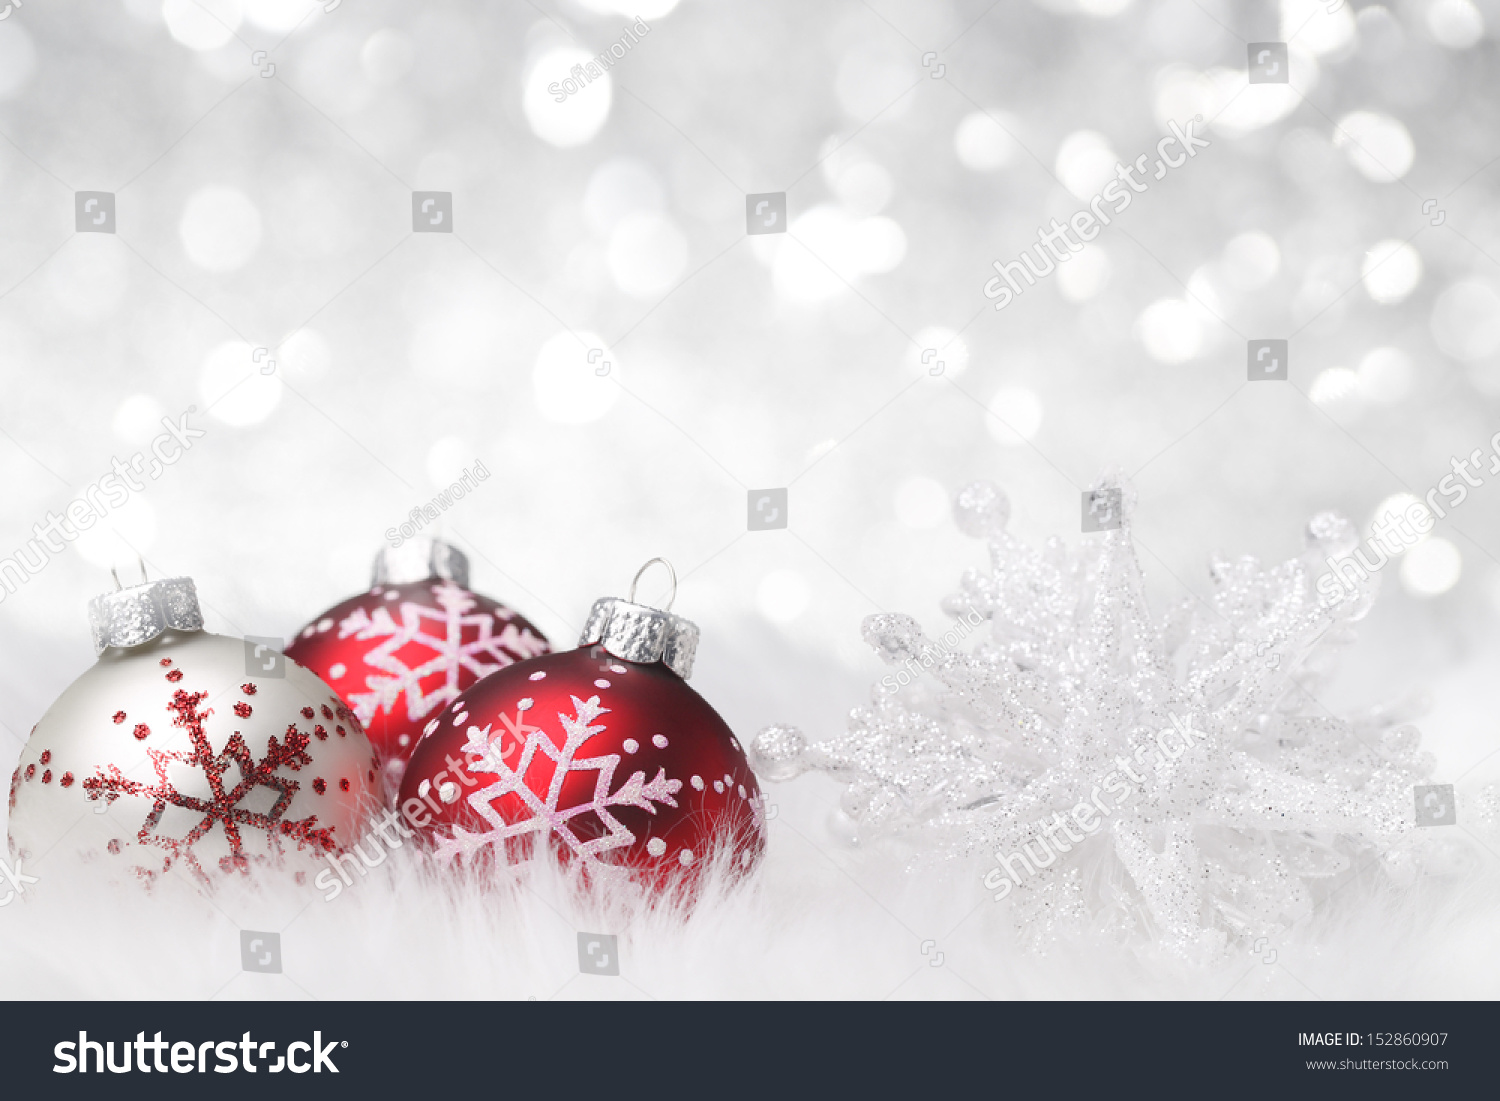 Christmas Balls Snowflake On Abstract Background Stock Photo ...